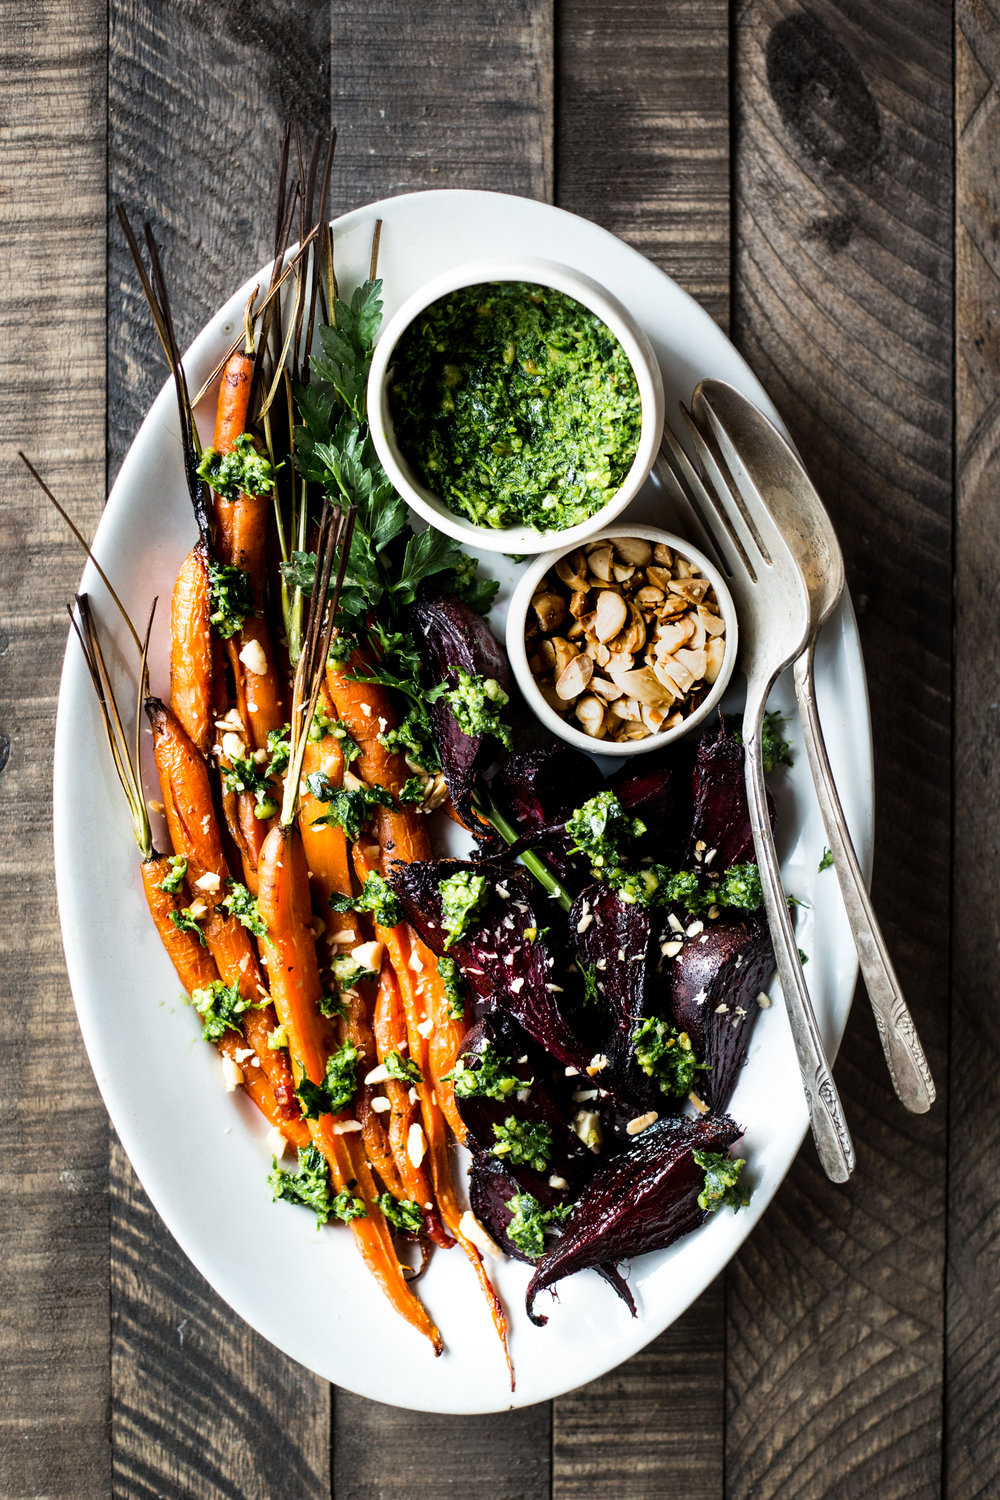 Honey-Roasted Carrots & Beets with Carrot Top Pesto